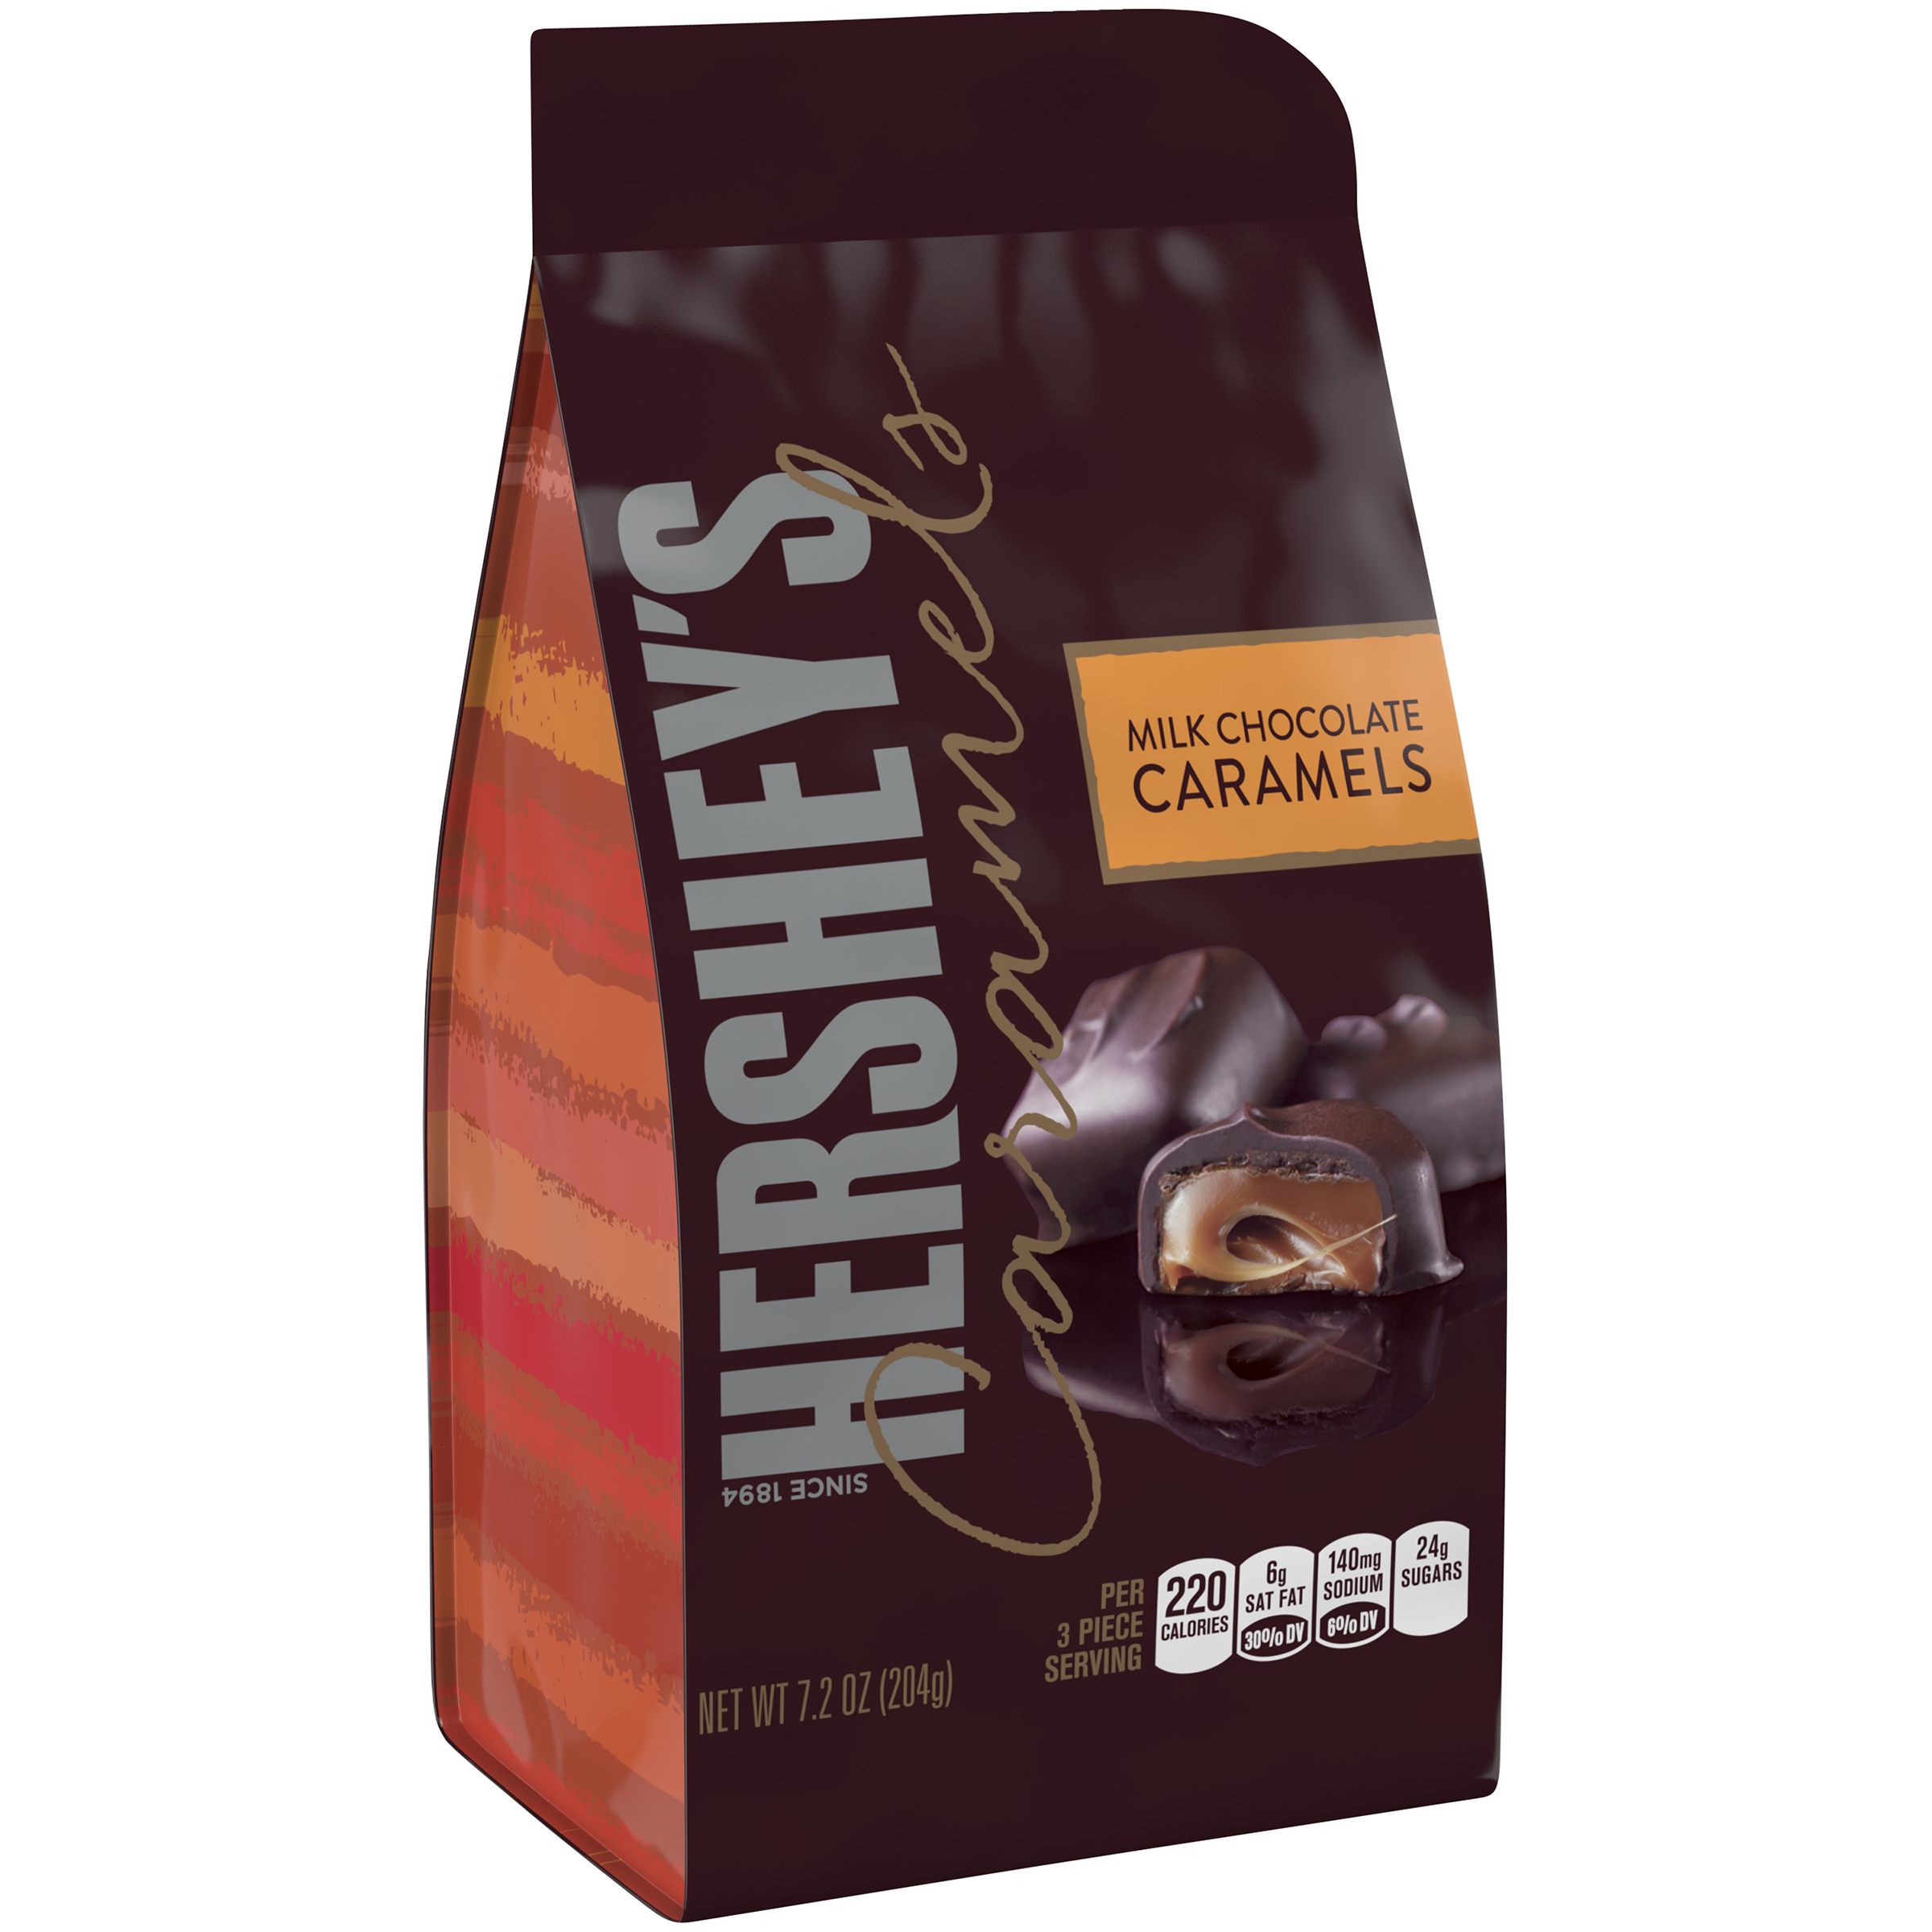 HERSHEY'S Caramels in Milk Chocolate, 7.2 oz